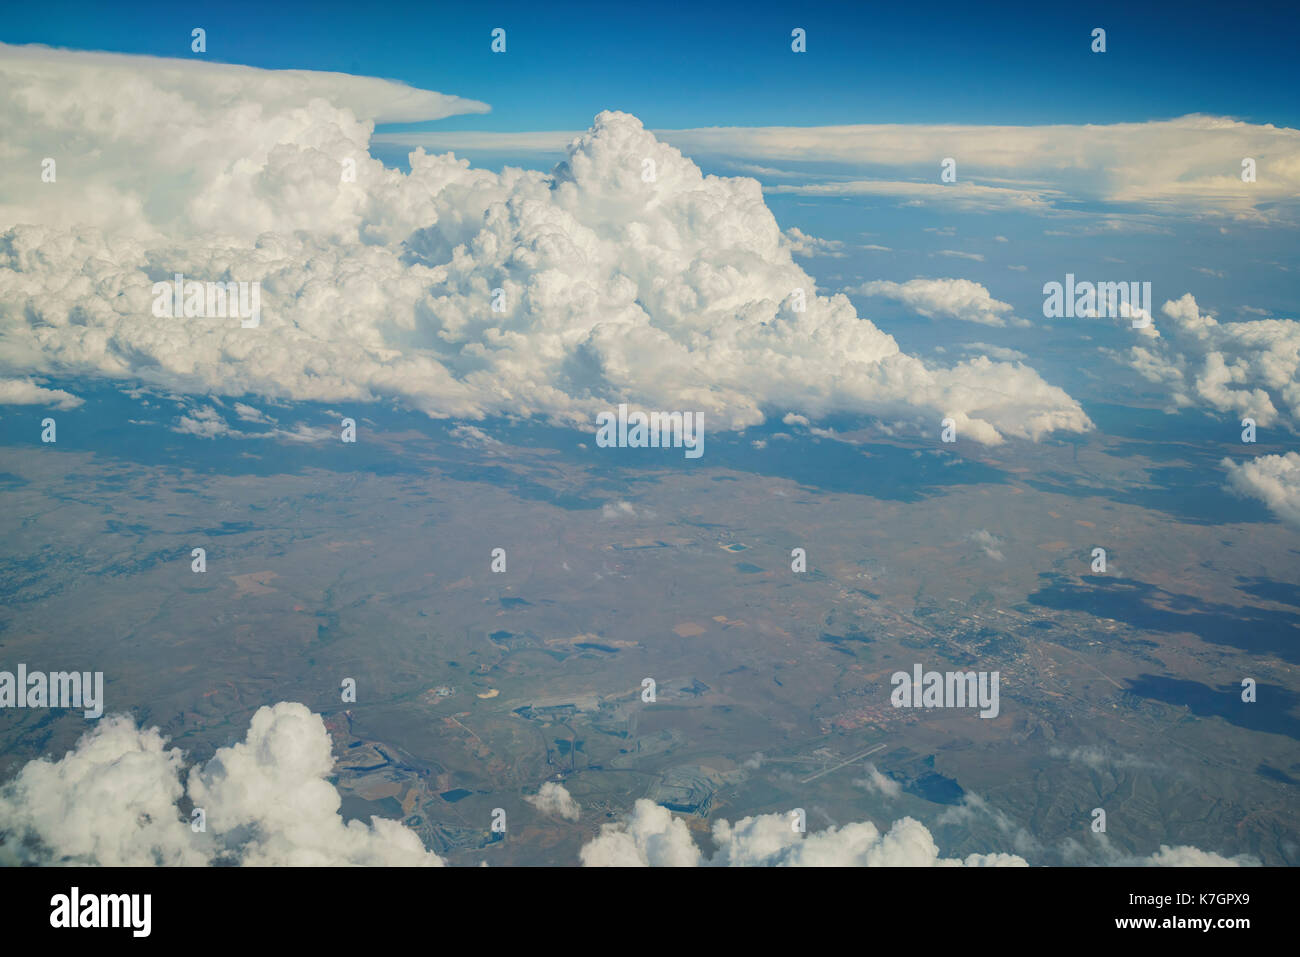 Aerial view of Gillette, view from window seat in an airplane at Wyoming, U.S.A. - Stock Image